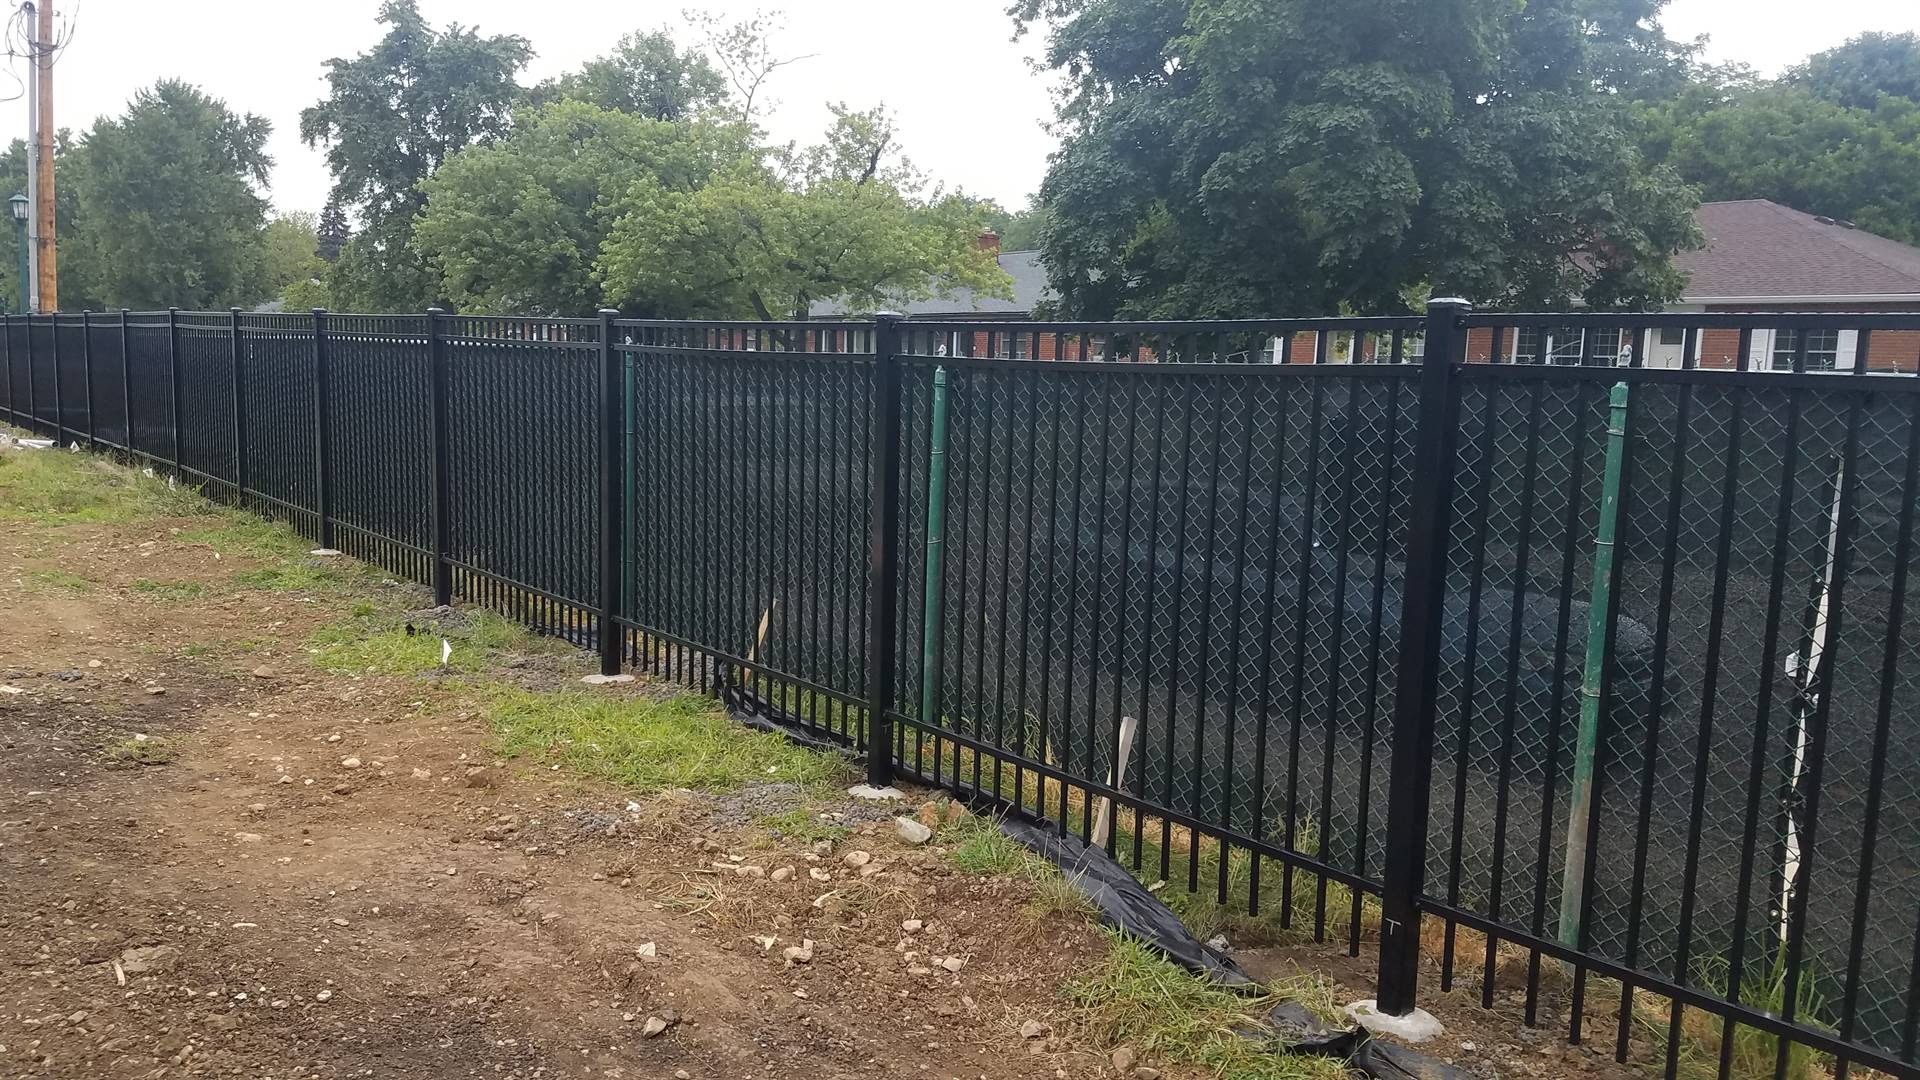 New stadium area fencing, July 2019